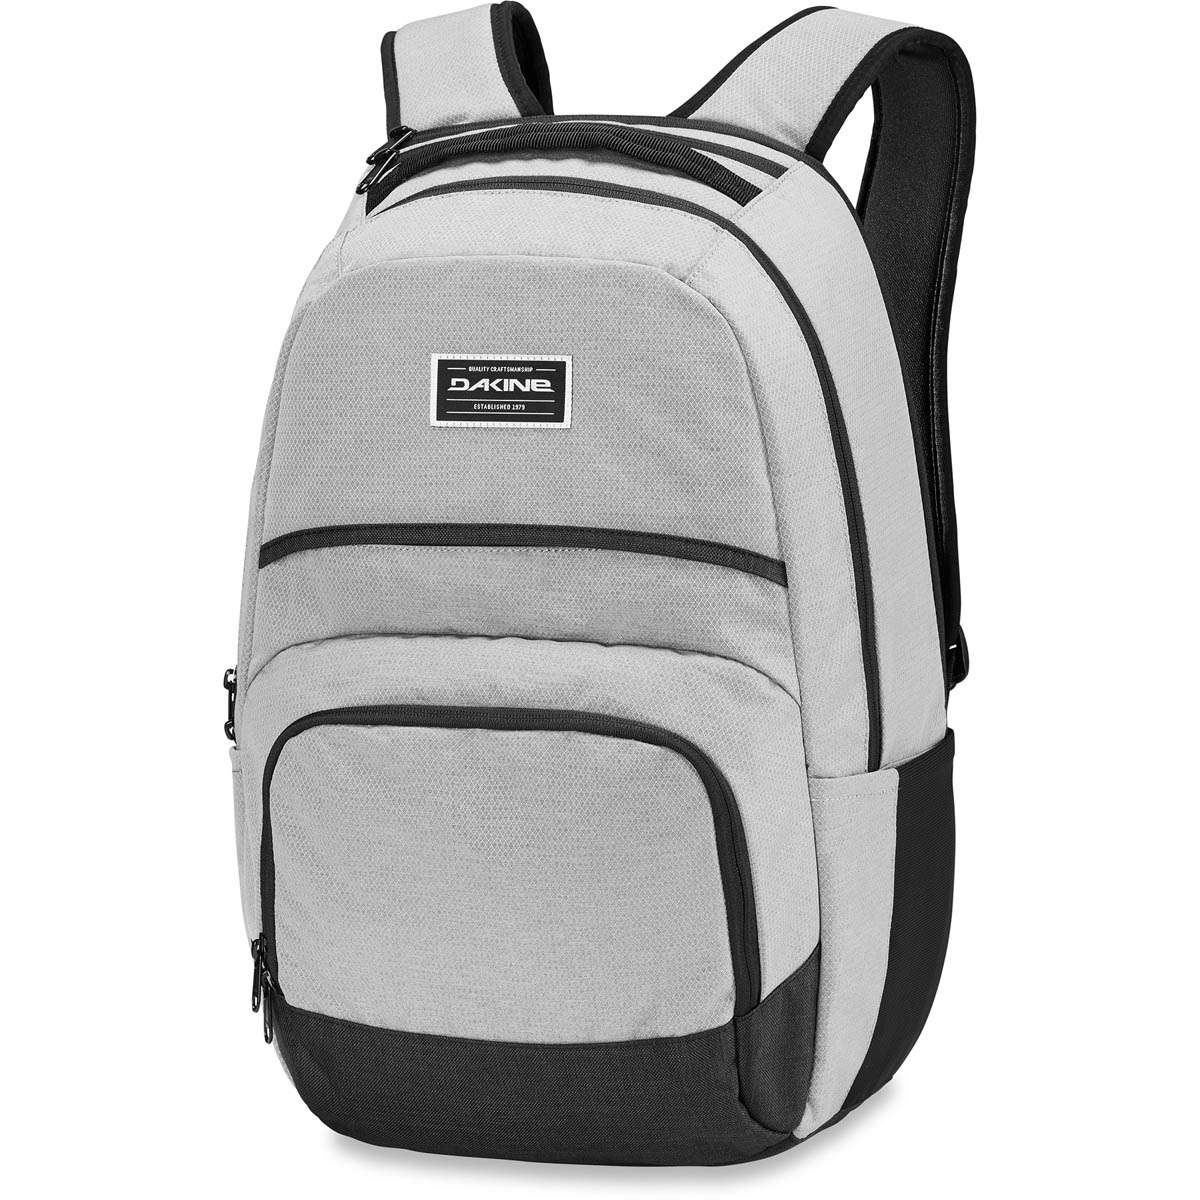 122a6a5fcbbb8 Dakine Campus DLX 33L Backpack Laurelwood